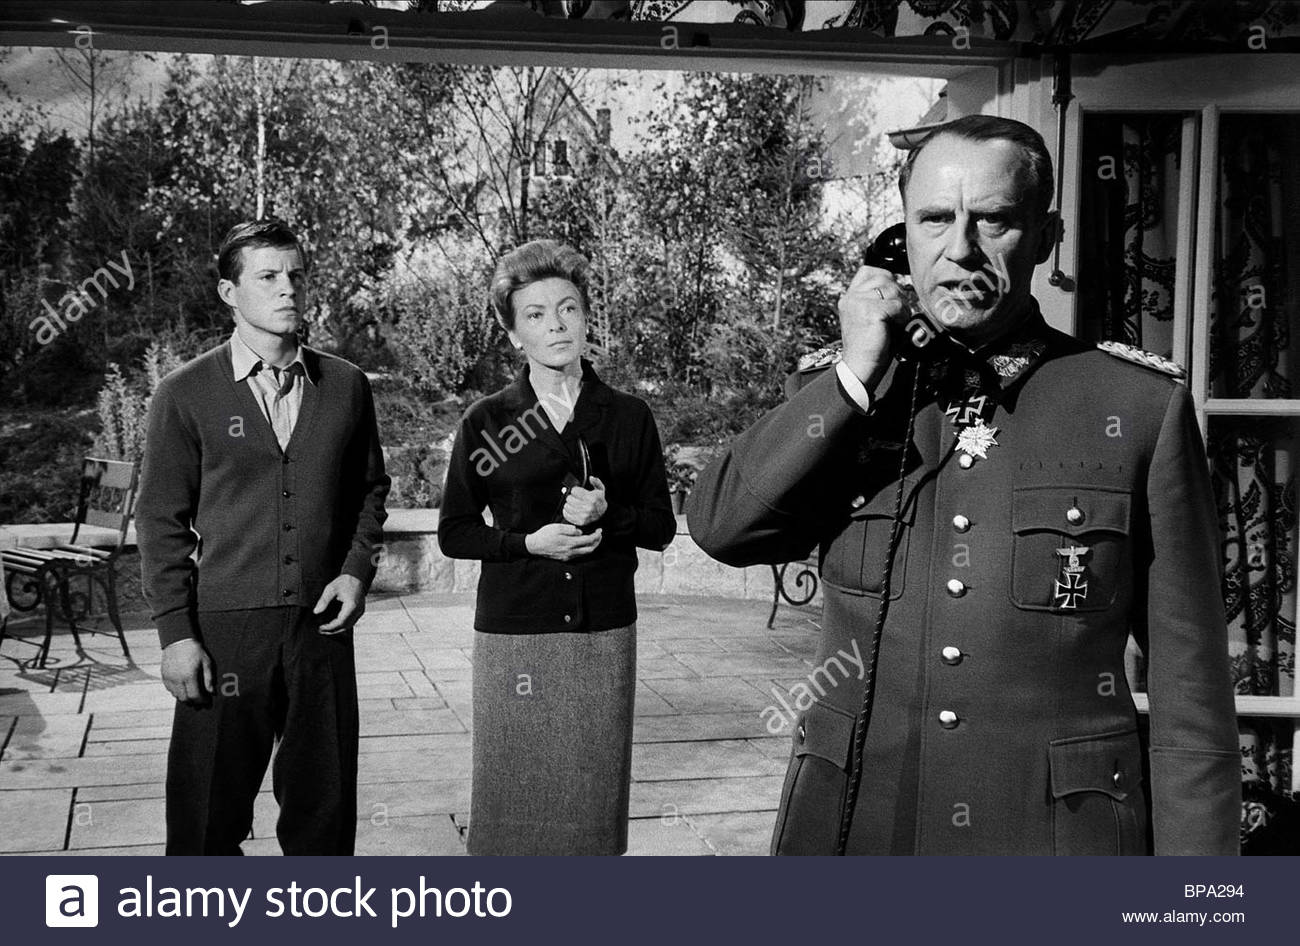 MICHAEL HINZ, RUTH HAUSMEISTER, WERNER HINZ, THE LONGEST DAY, 1962 - Stock Image